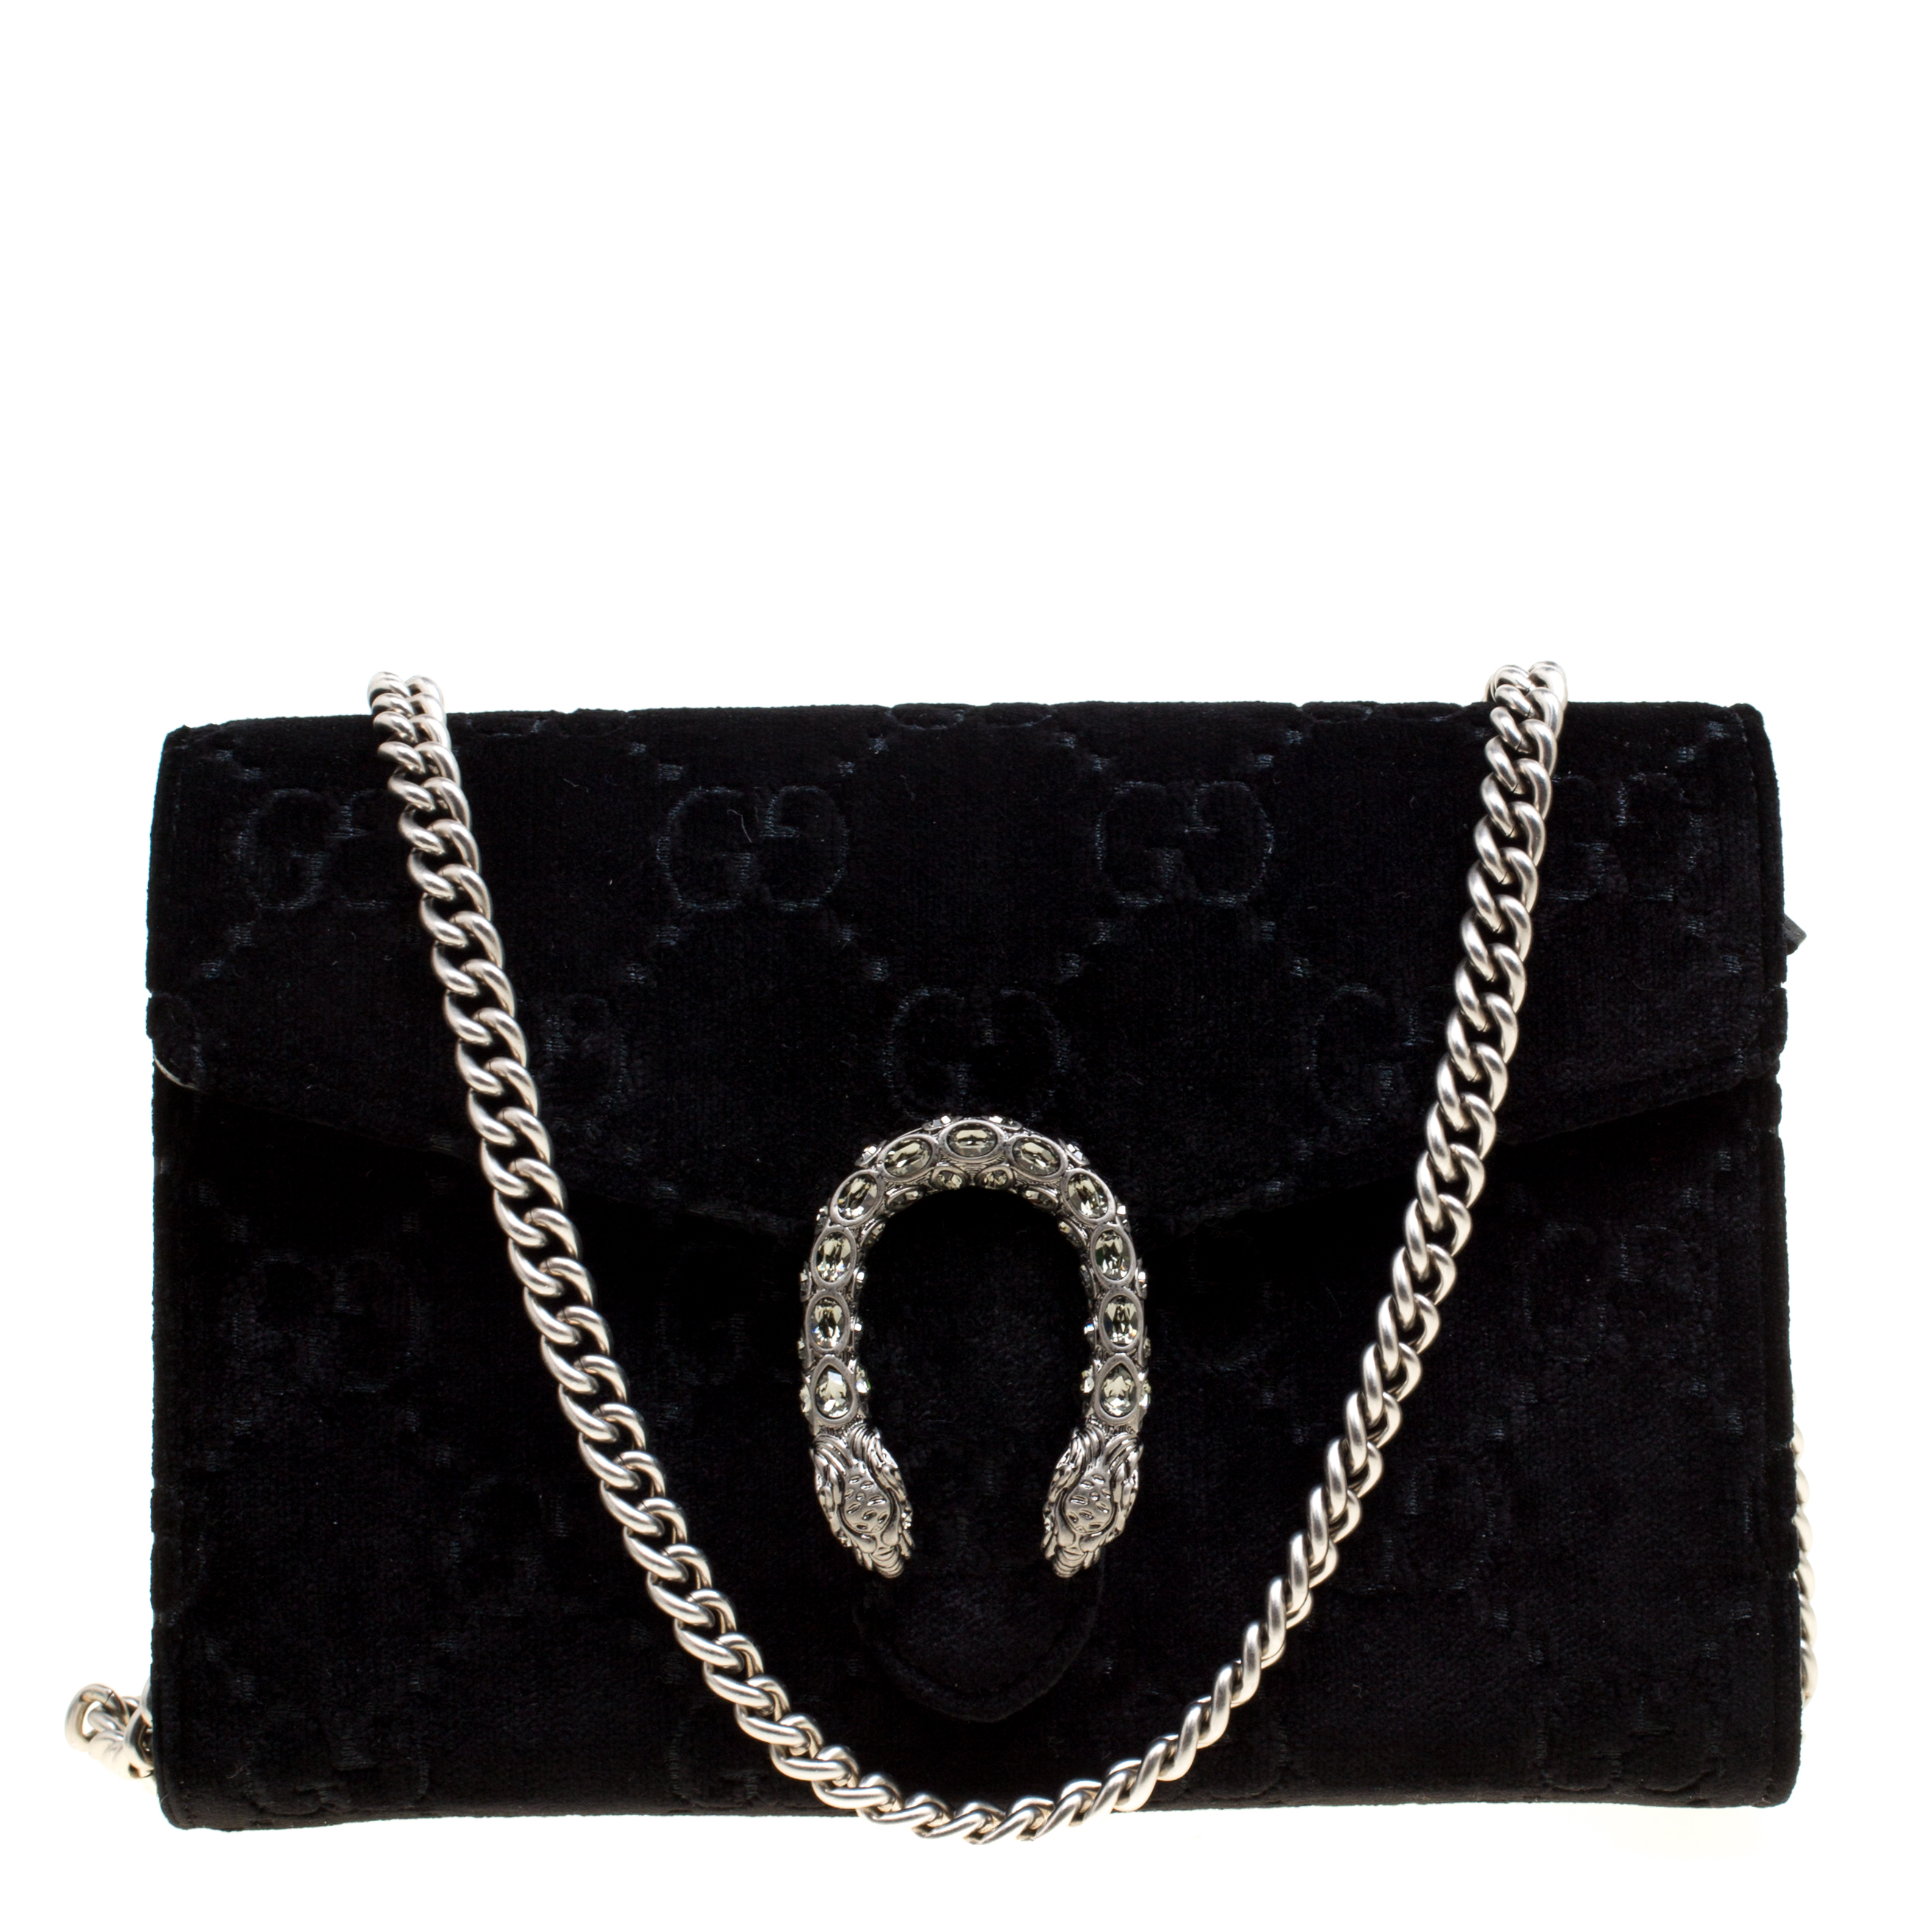 ... Gucci Black GG Velvet Mini Dionysus Wallet On Chain. nextprev. prevnext dc4a4ba87bf5b